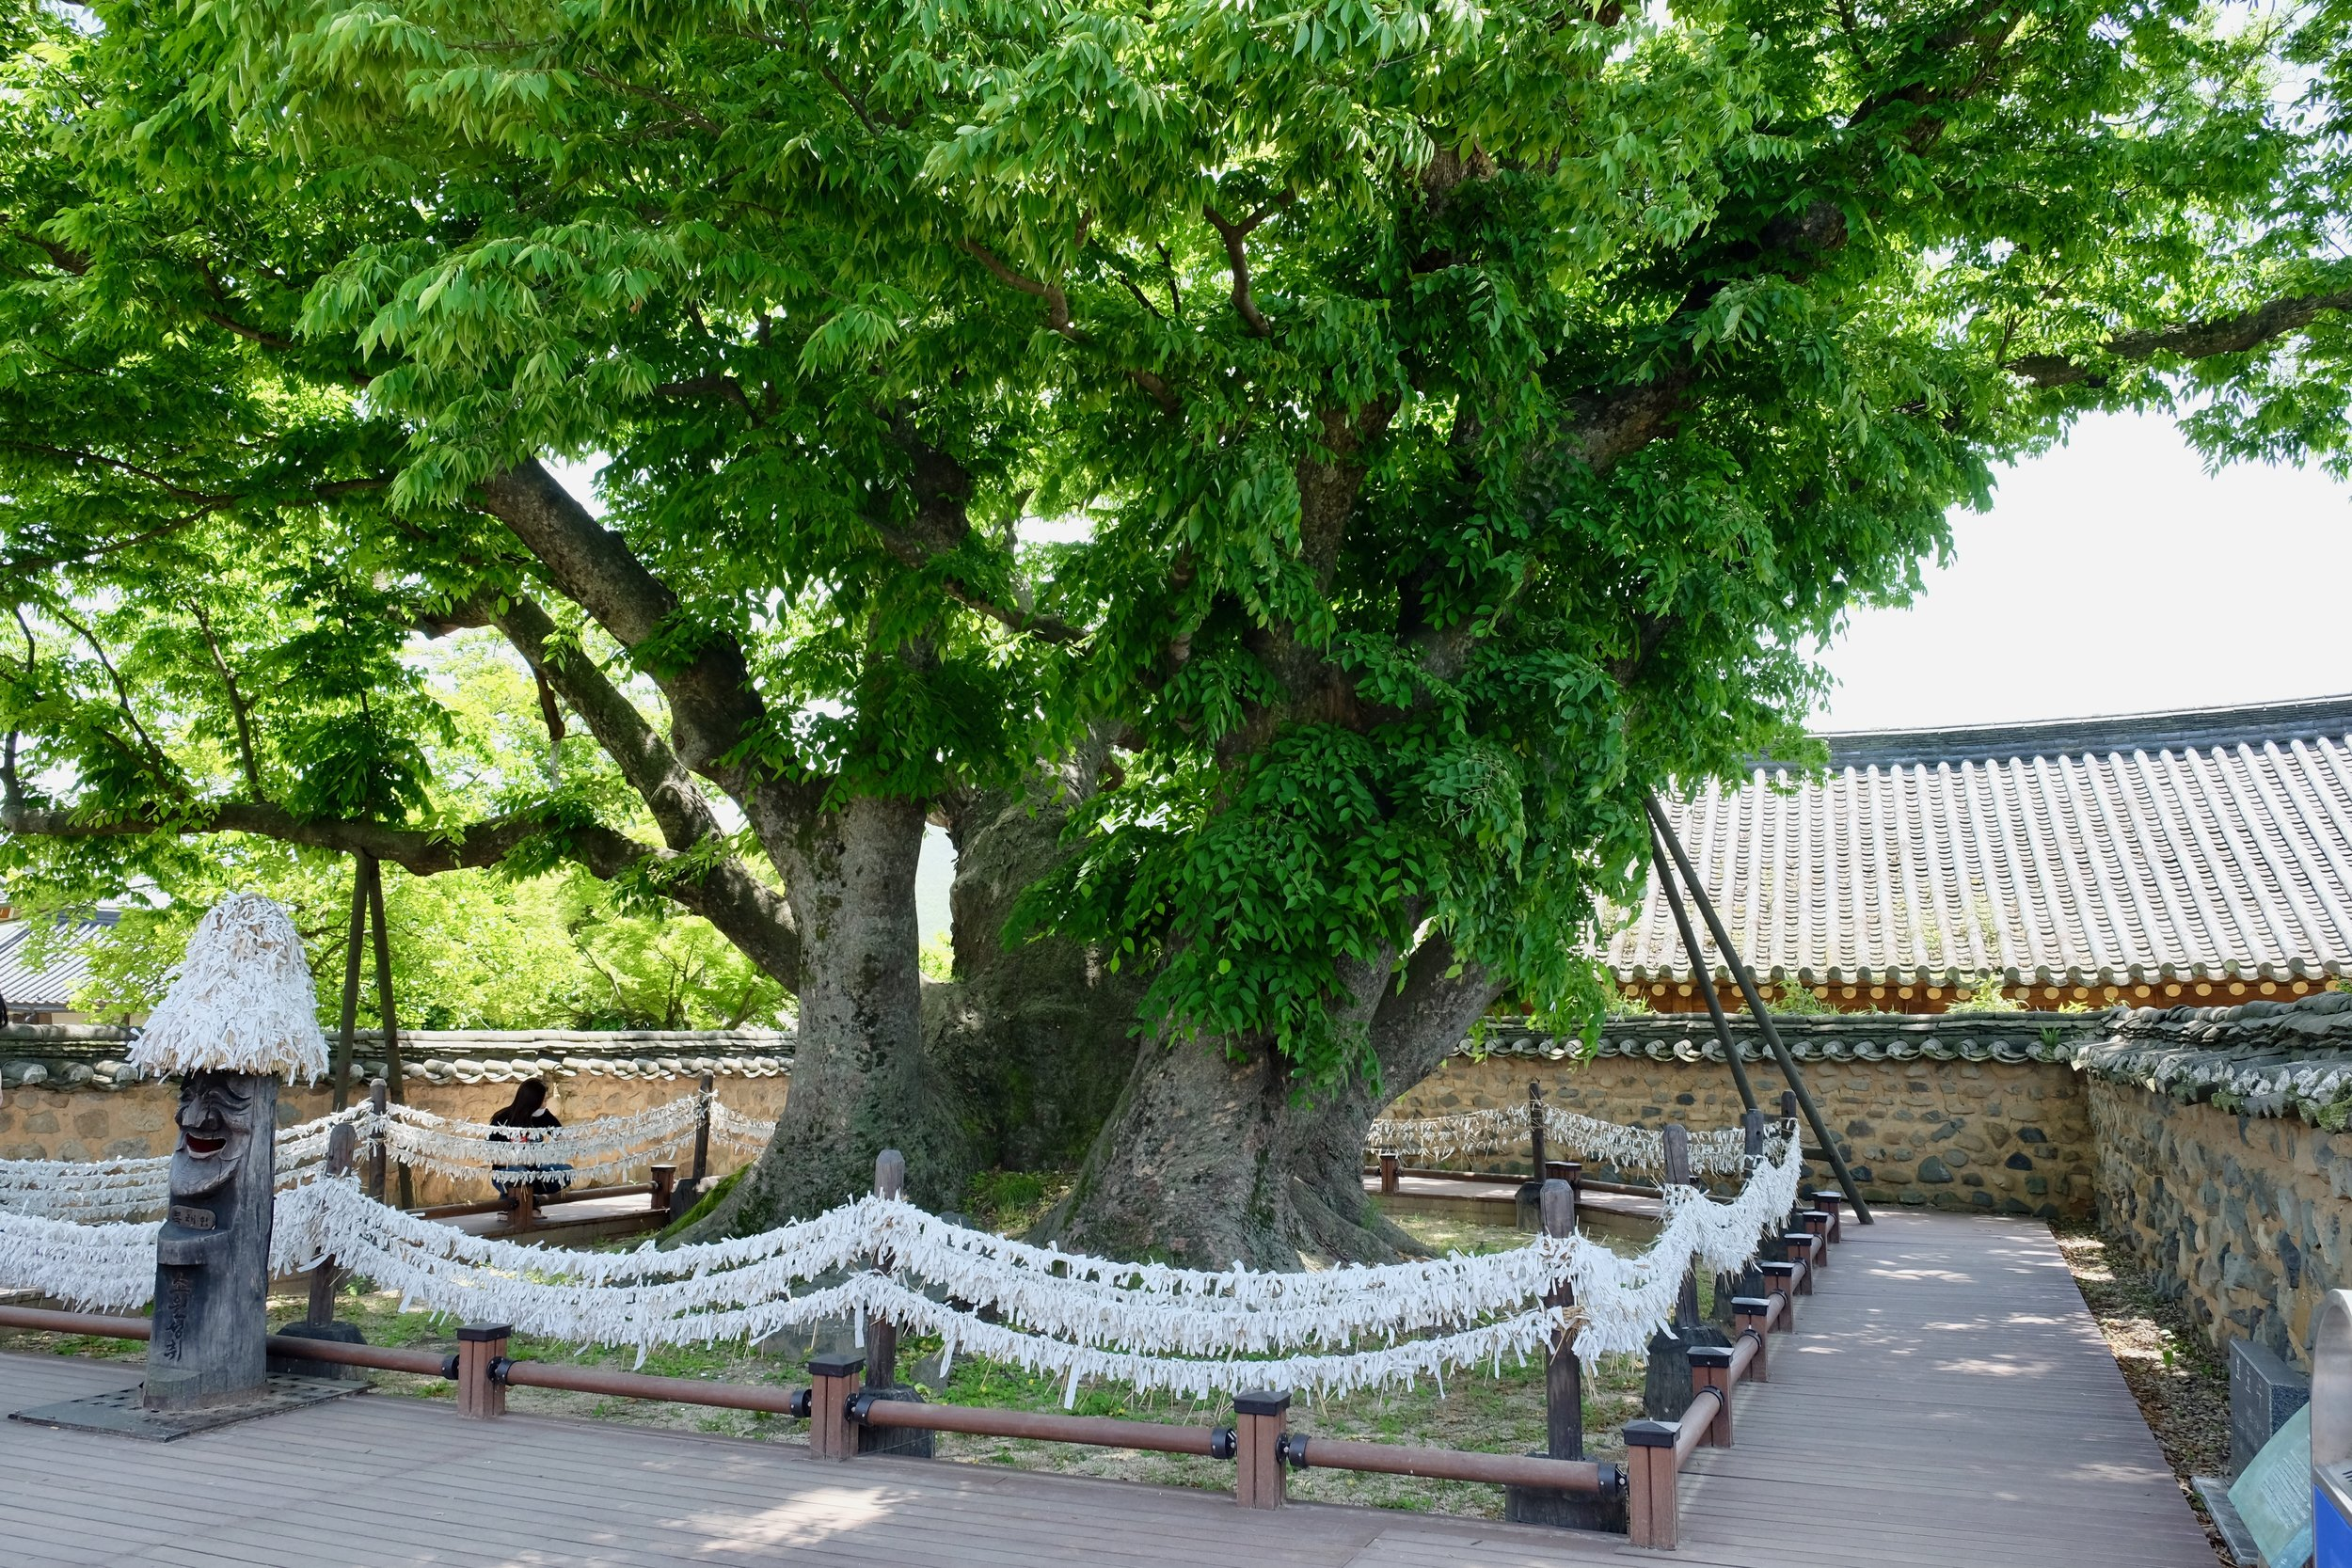 """Situated at the very centre of Hahoe Village, this 600-year-old zelkova tree is called Samsindang, which means """"shrine for three gods"""". It is worshipped as a village spirit. It is believed throughout the country that Samsin exist in every home and are thus enshrined in the matron's room. But in Hahoe Village, it's this tree that hosts the Samsin. On the 15th day of every January by the lunar calendar, the people of the village perform a ritual to pray for peace in the village."""